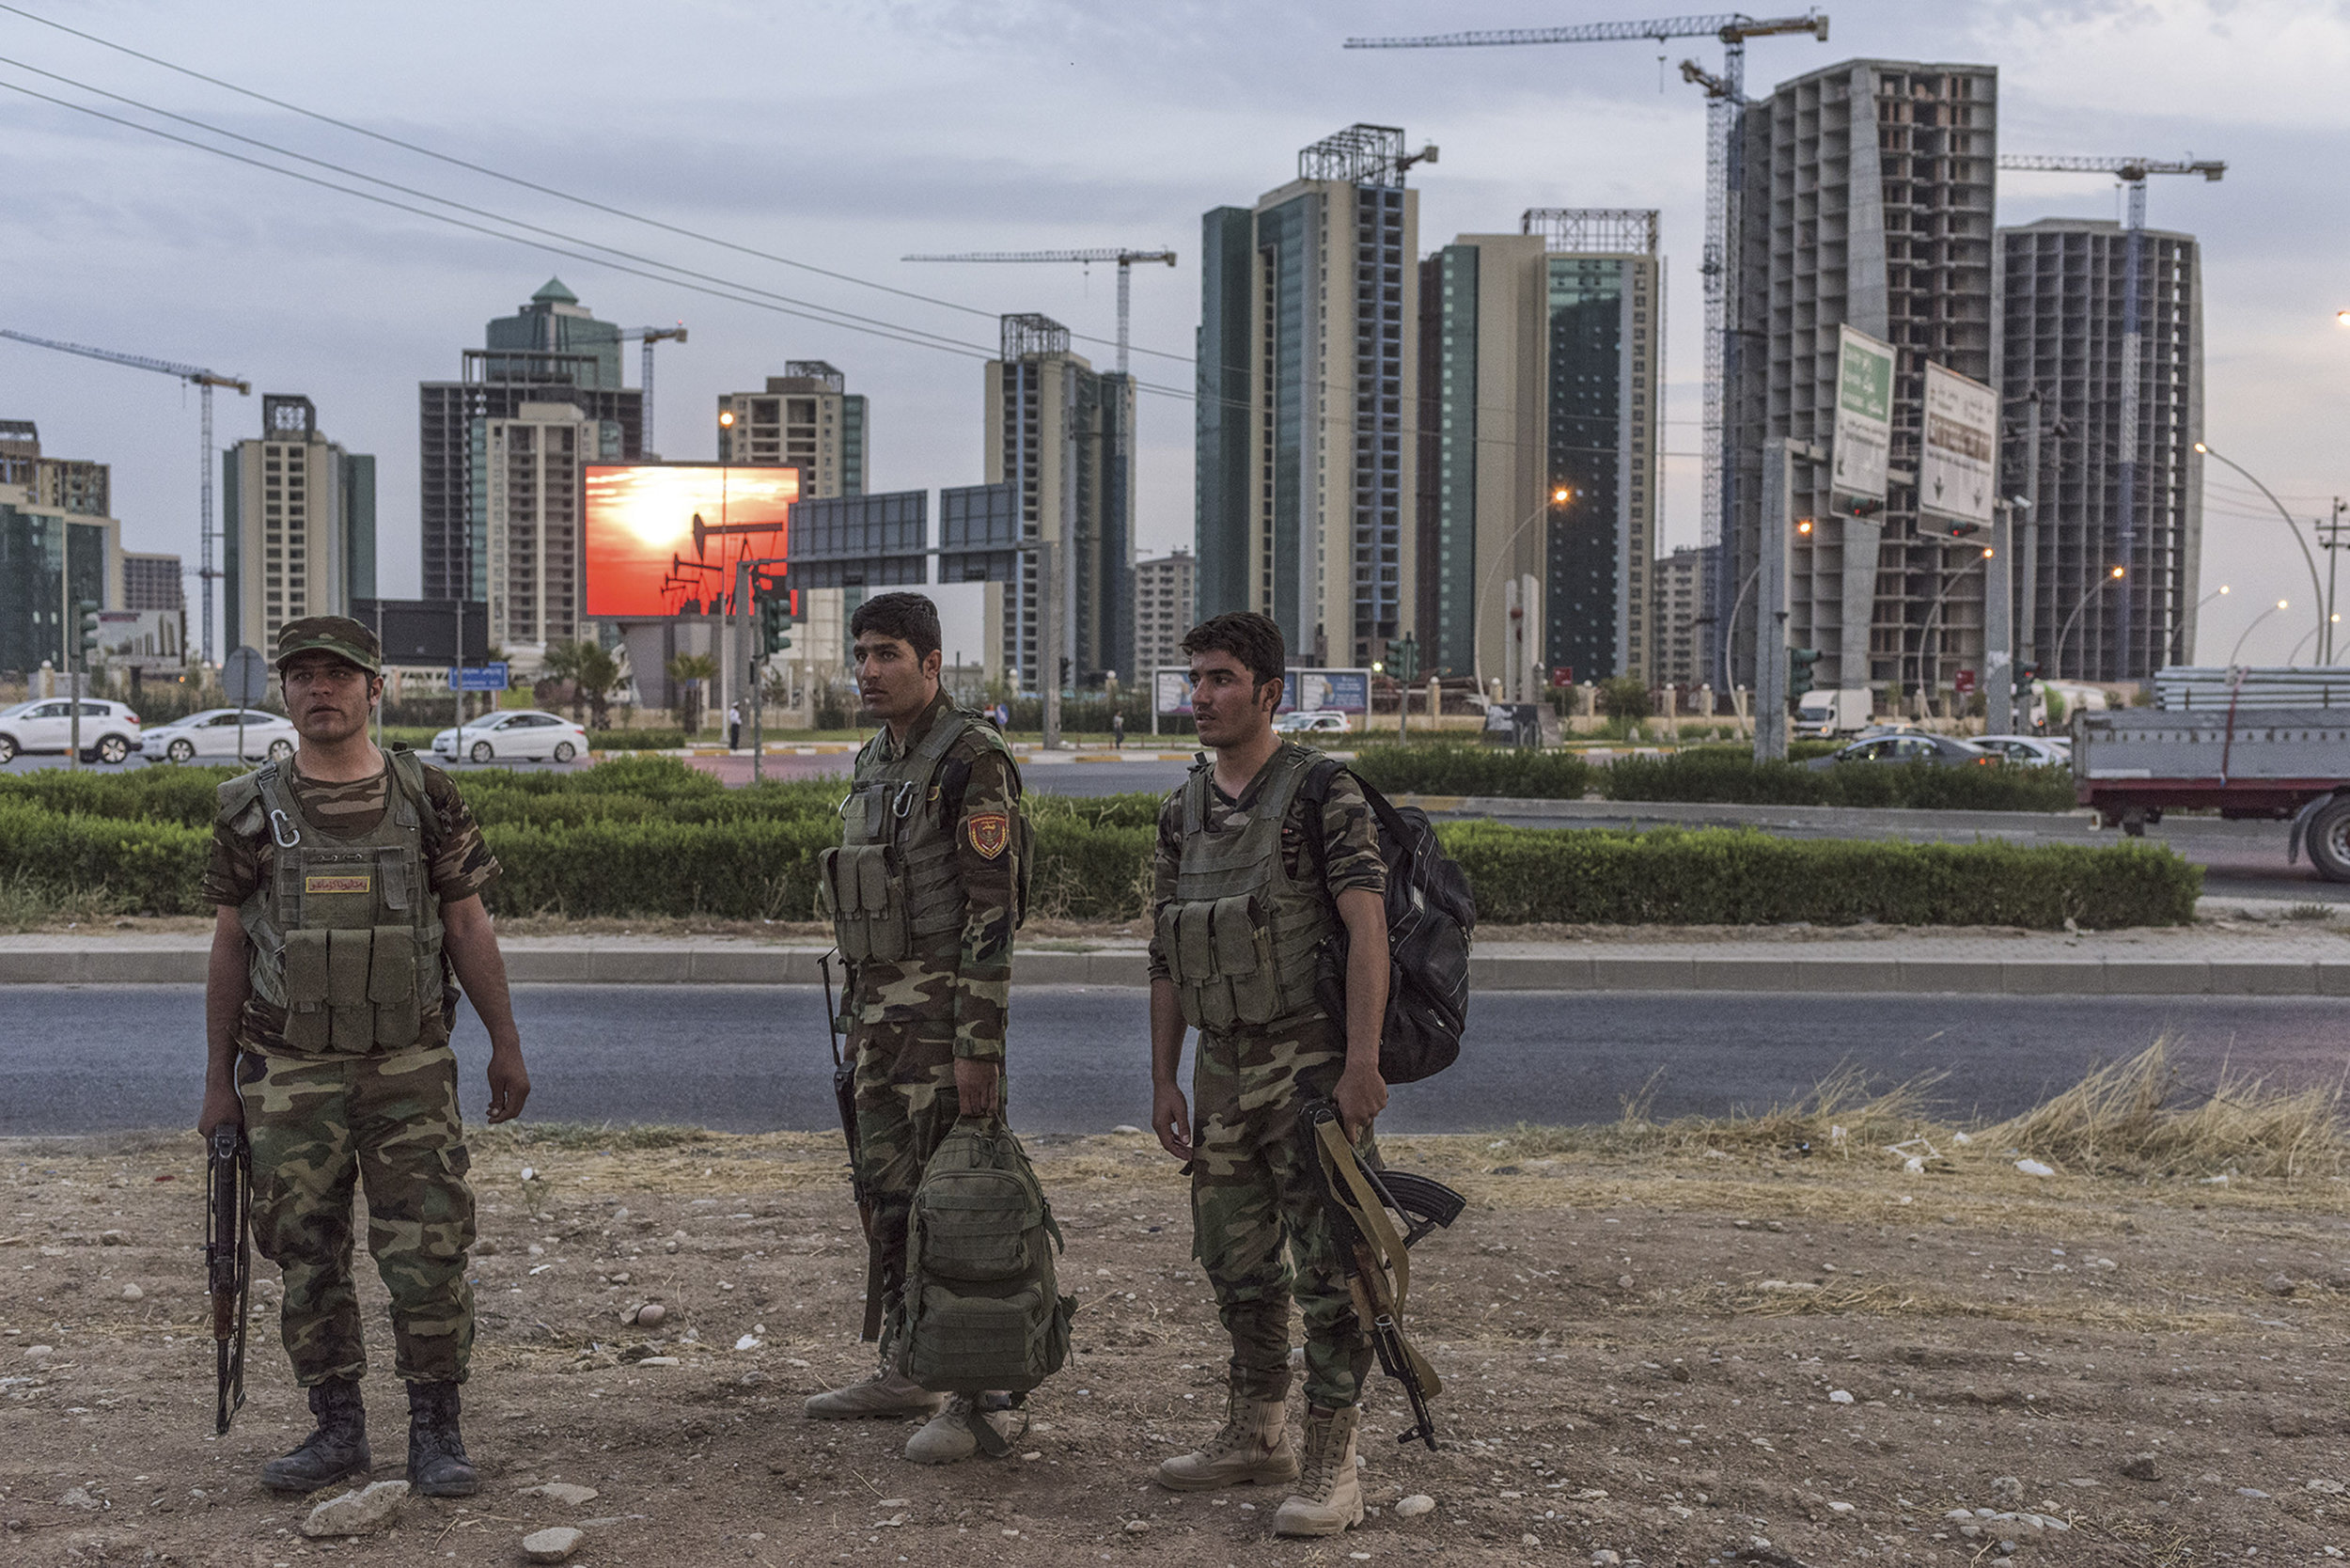 """Iraqi Kurdistan, Erbil, September 2015, Peshmerga returning from the front line wait for a lift on the outskirts of Erbil. Behind them looms a skyline of unfinished buildings, a reminder of a more hopeful era. """"We haven't been paid in months,"""" says one soldier. """"It doesn't matter. We would all die for Kurdistan."""""""